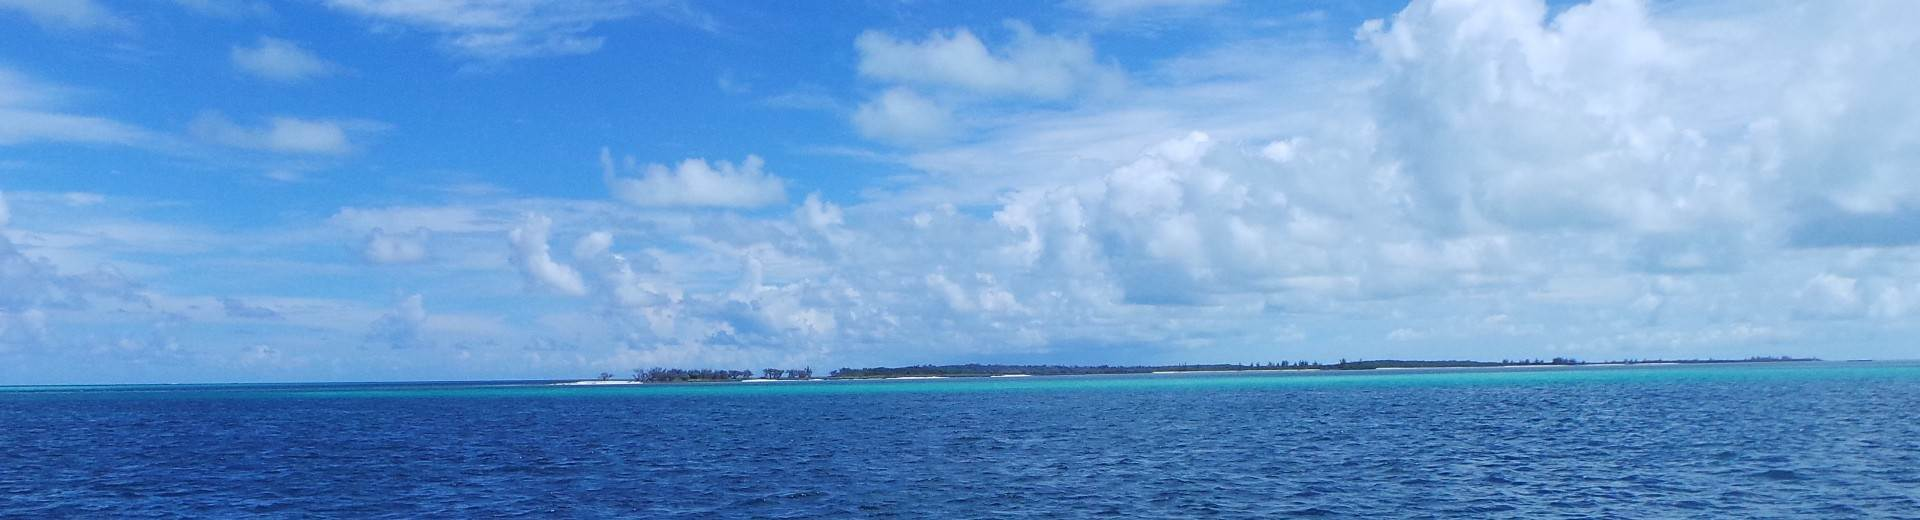 19. Private Islands por un Venta en Large Private Island in Abaco with approved development Plans - MLS 42074 Abaco, Bahamas